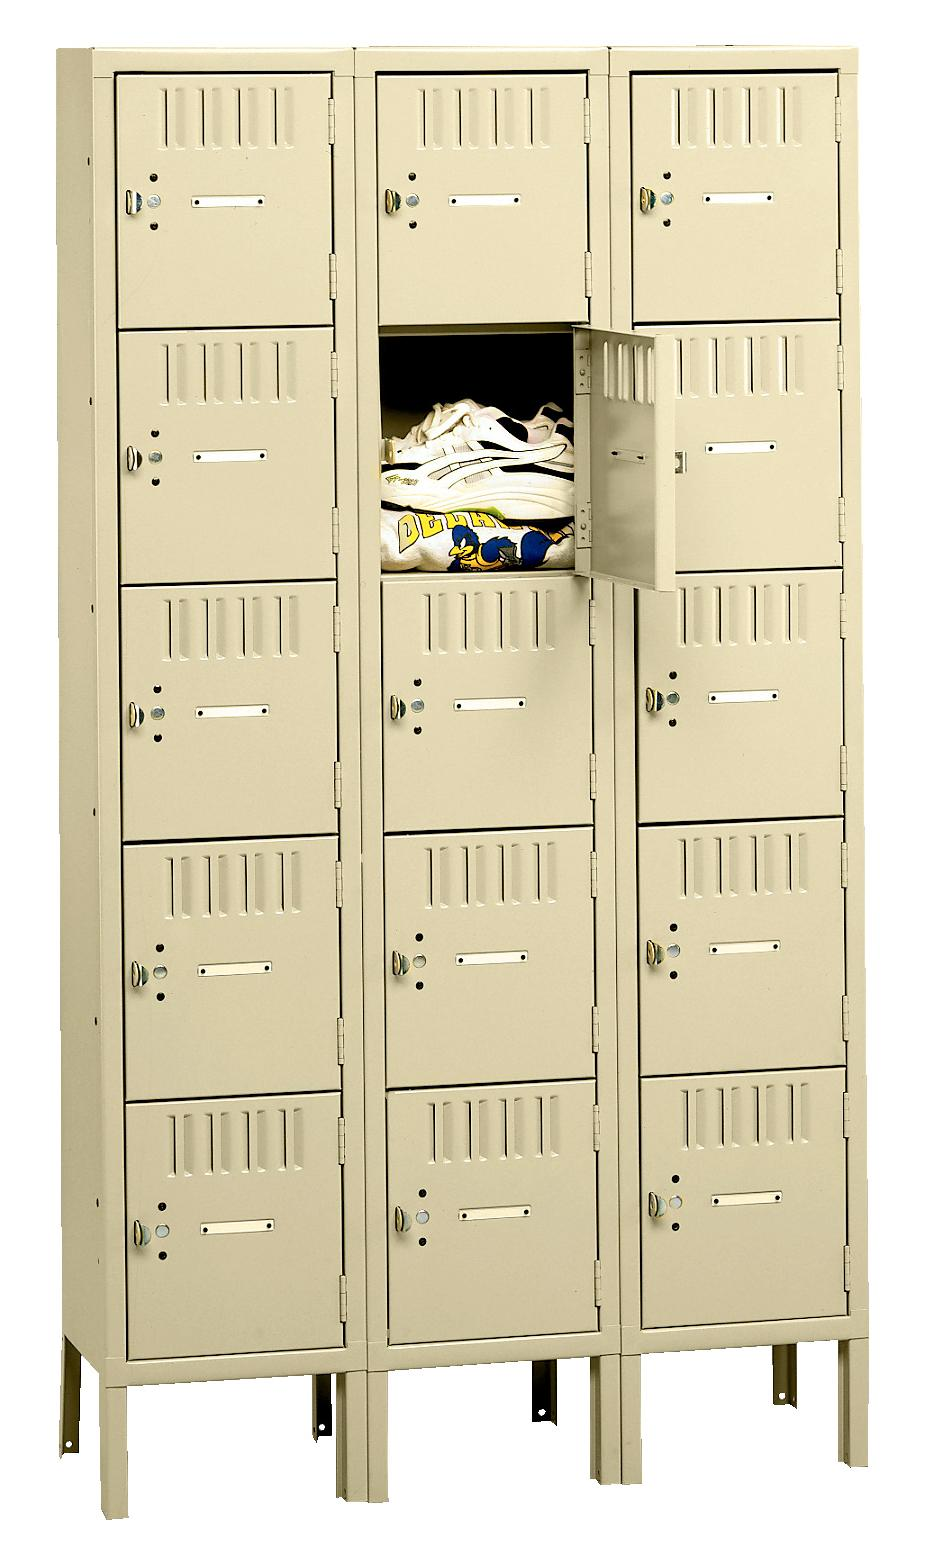 5 Tier Box Lockers With Legs - Model BS5-121512-3